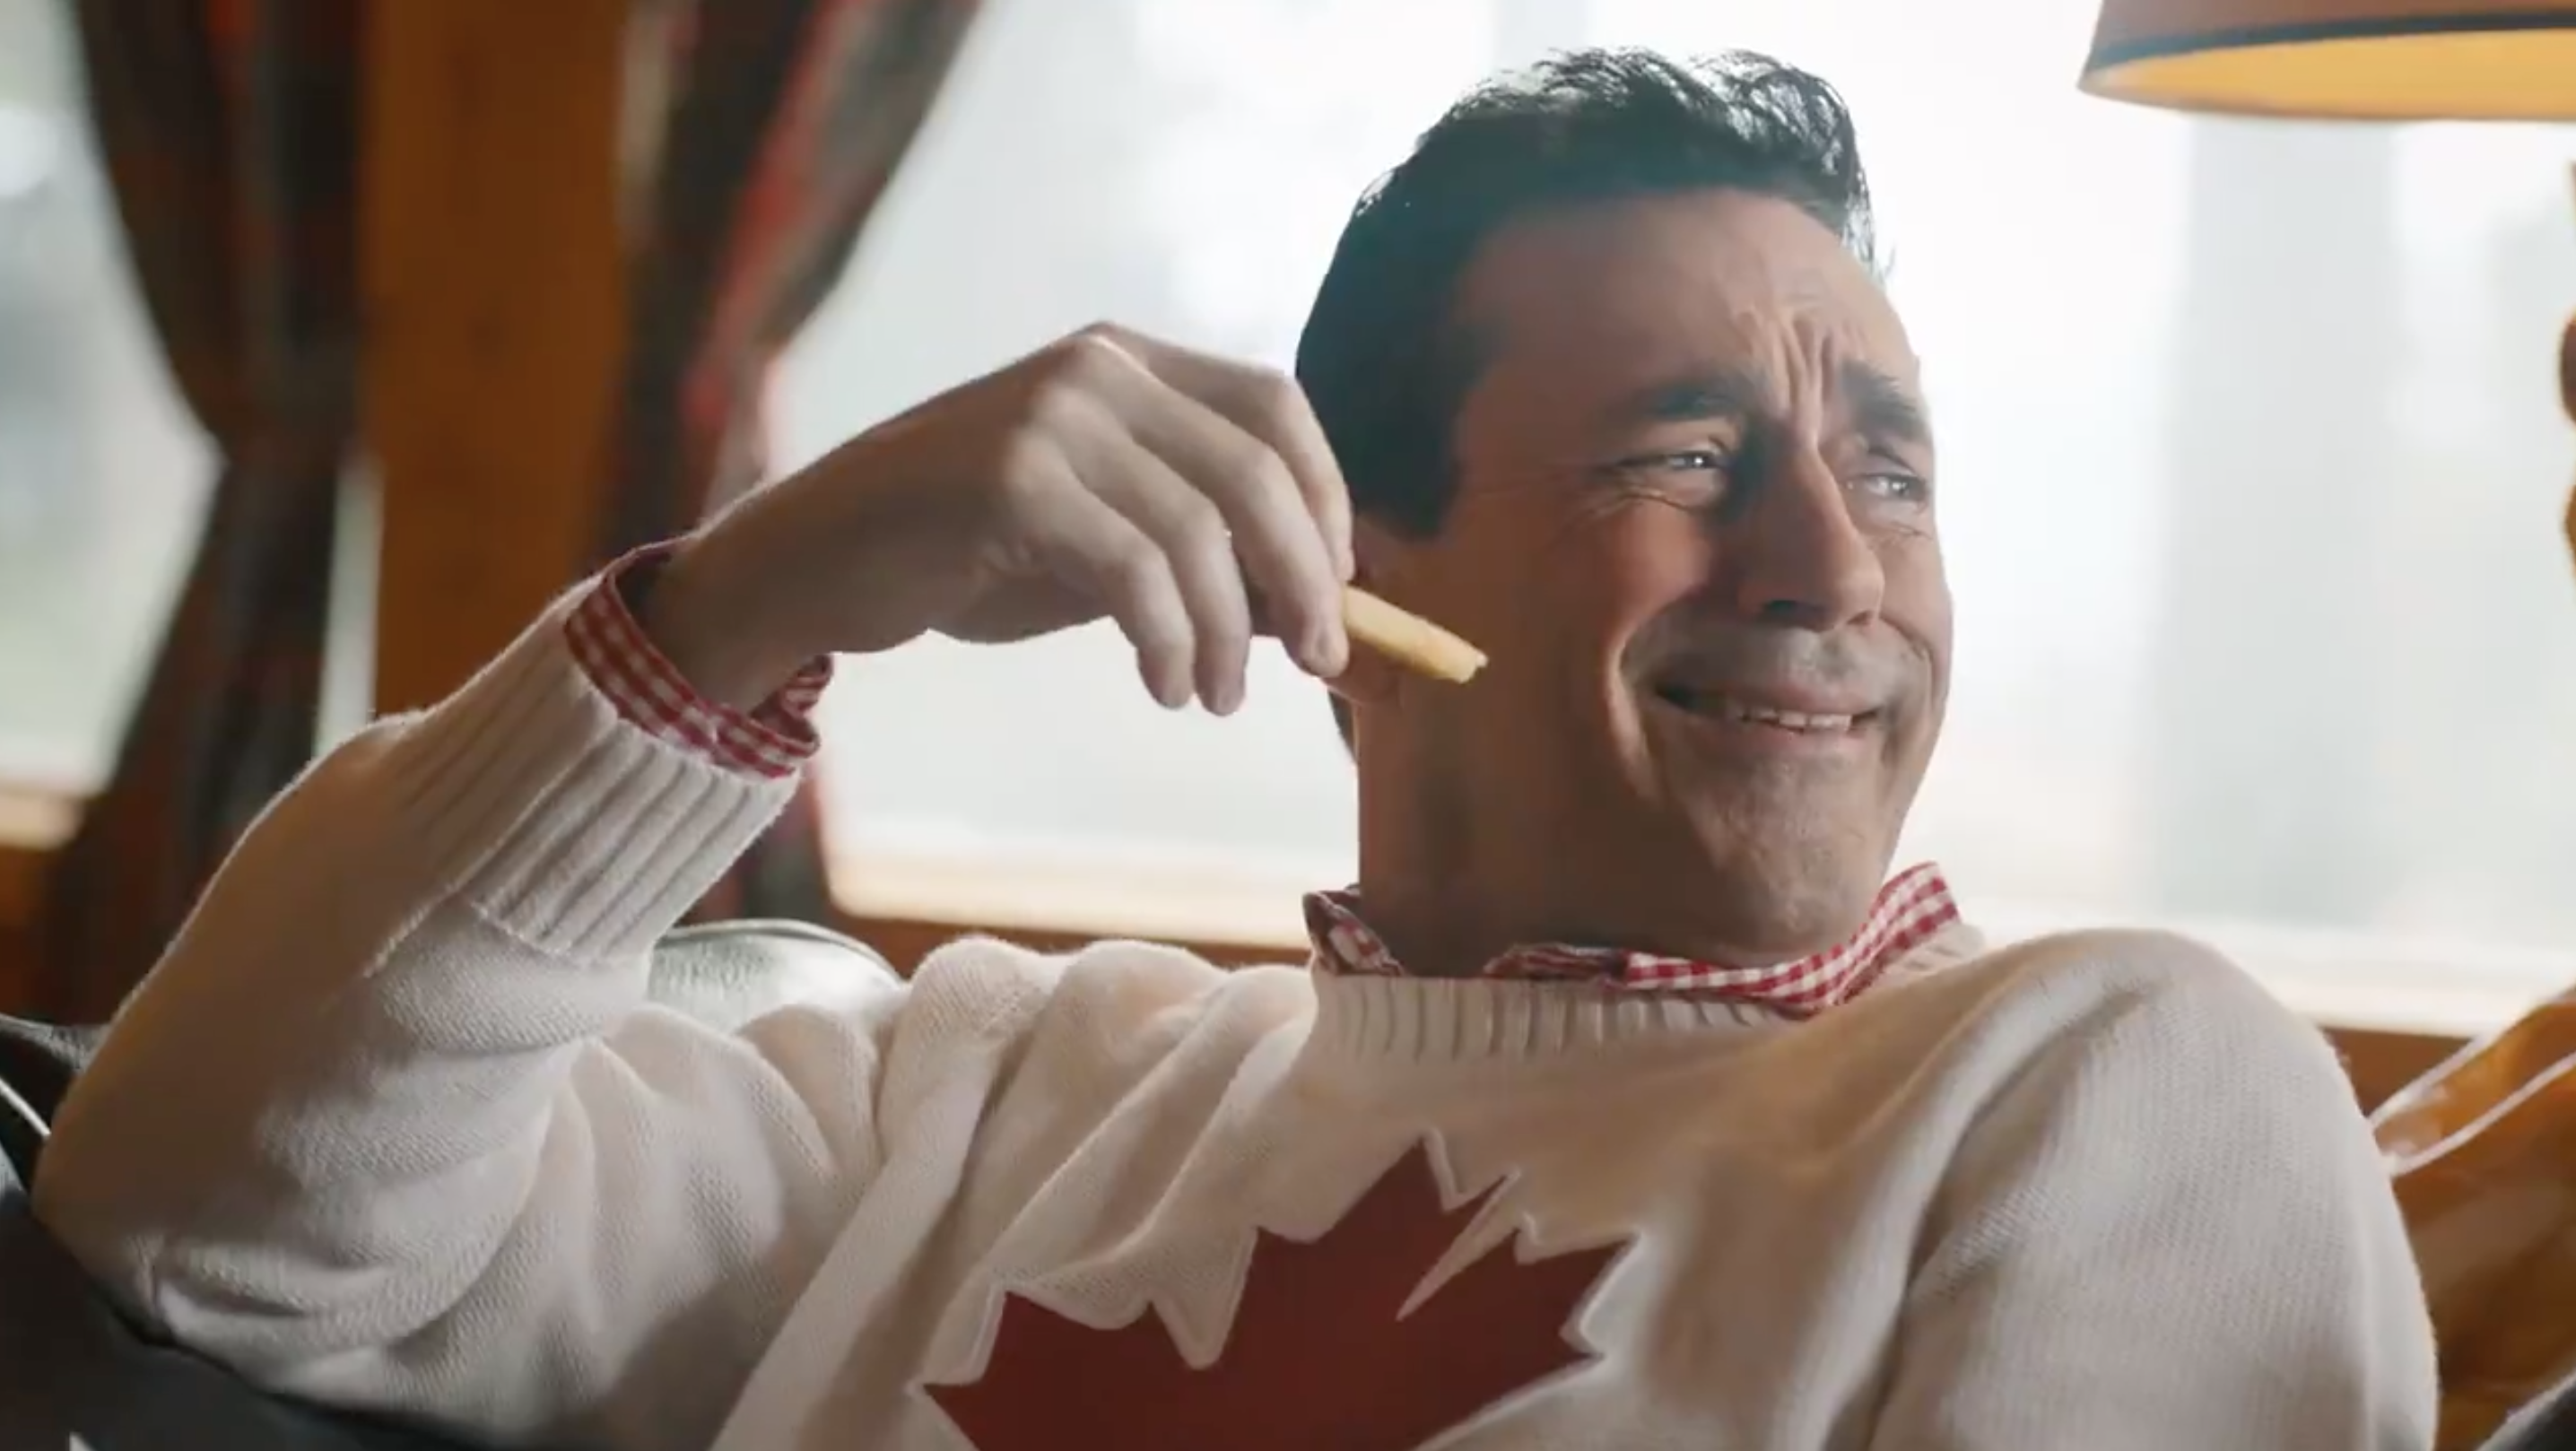 Guelph gets shout out in new commercial starring Jon Hamm